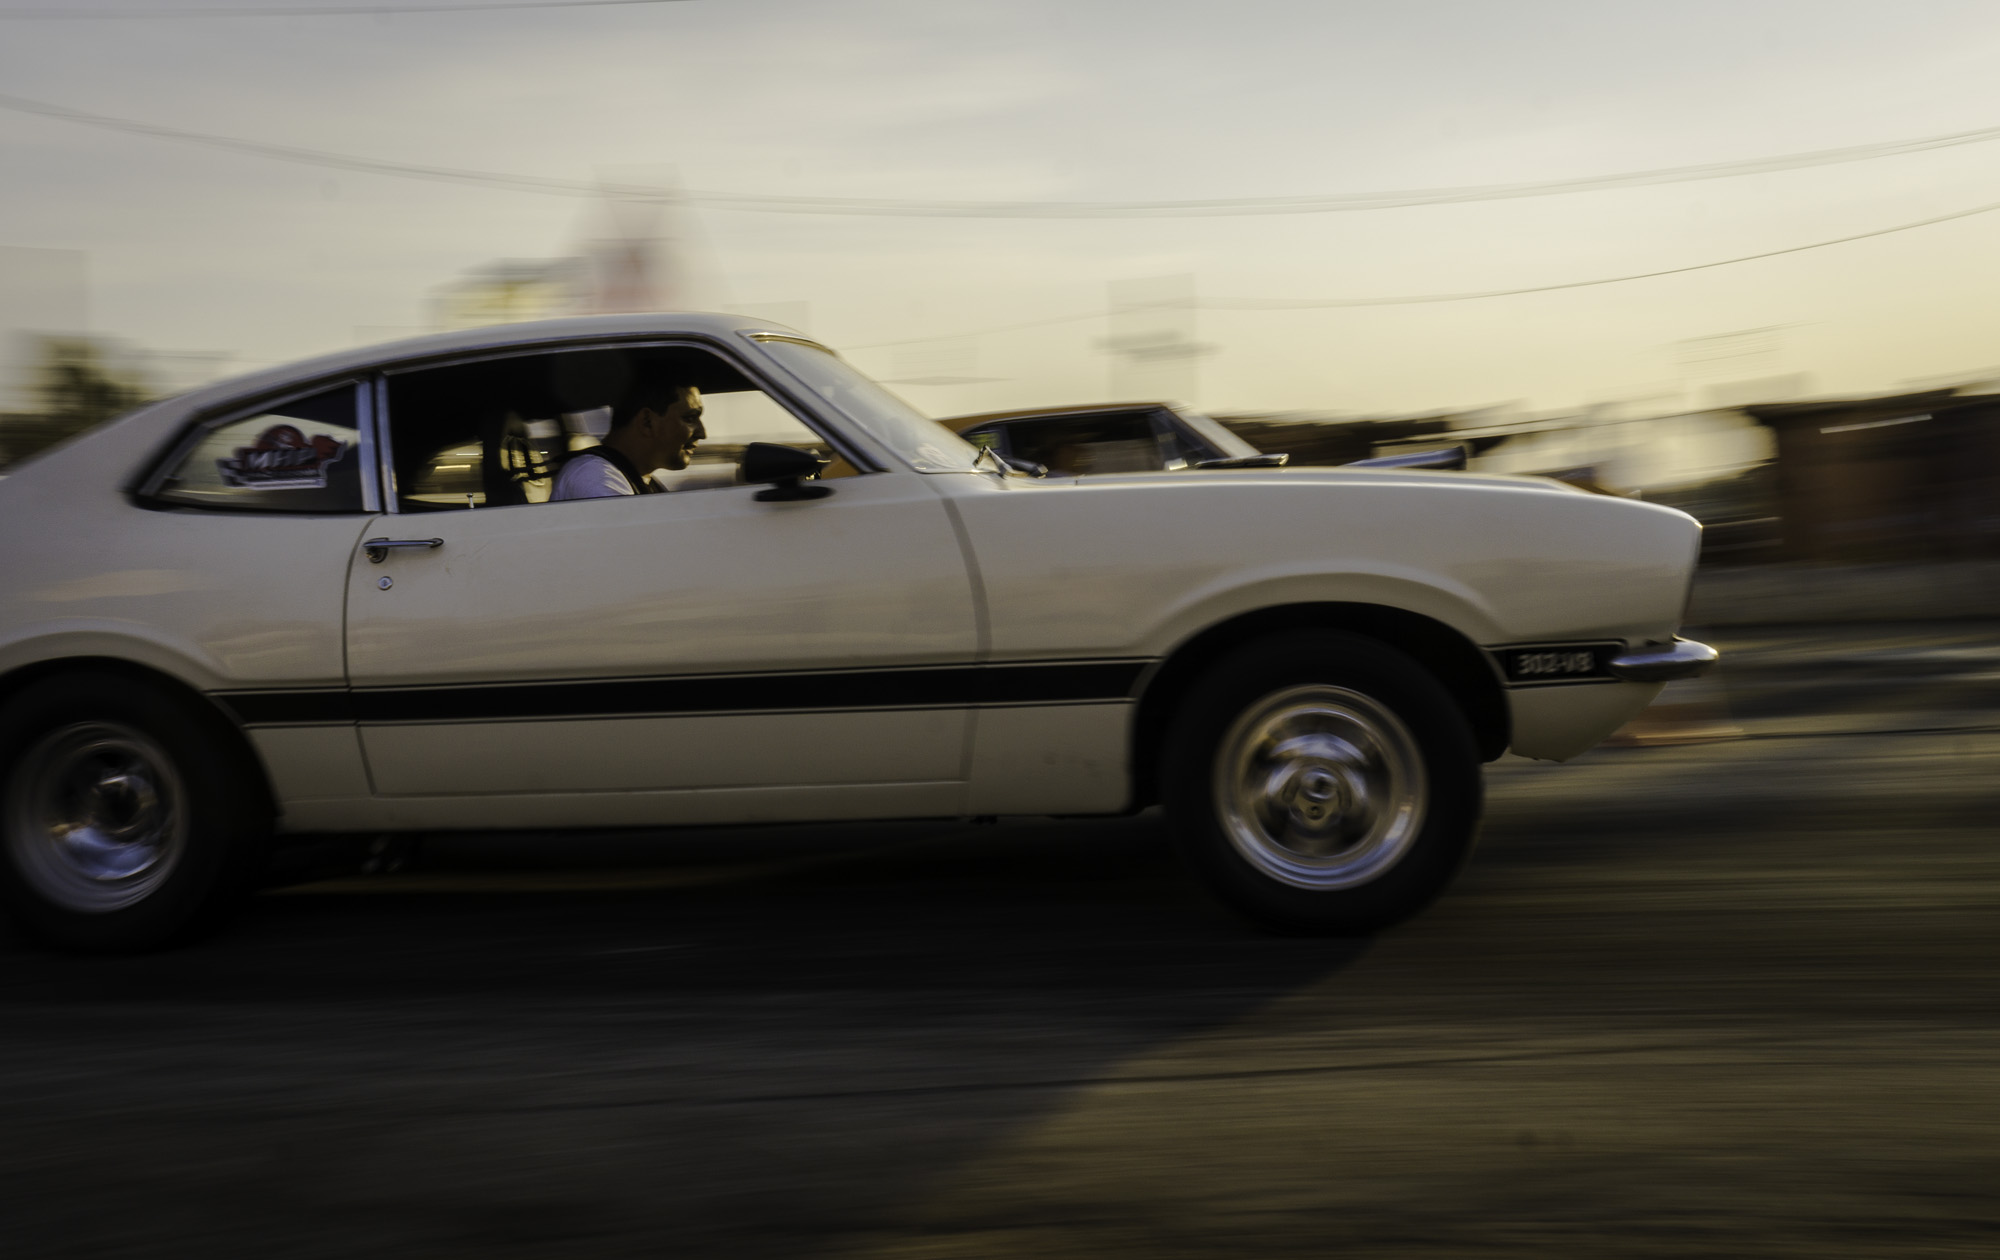 A Ford Mustang launching for a drag race